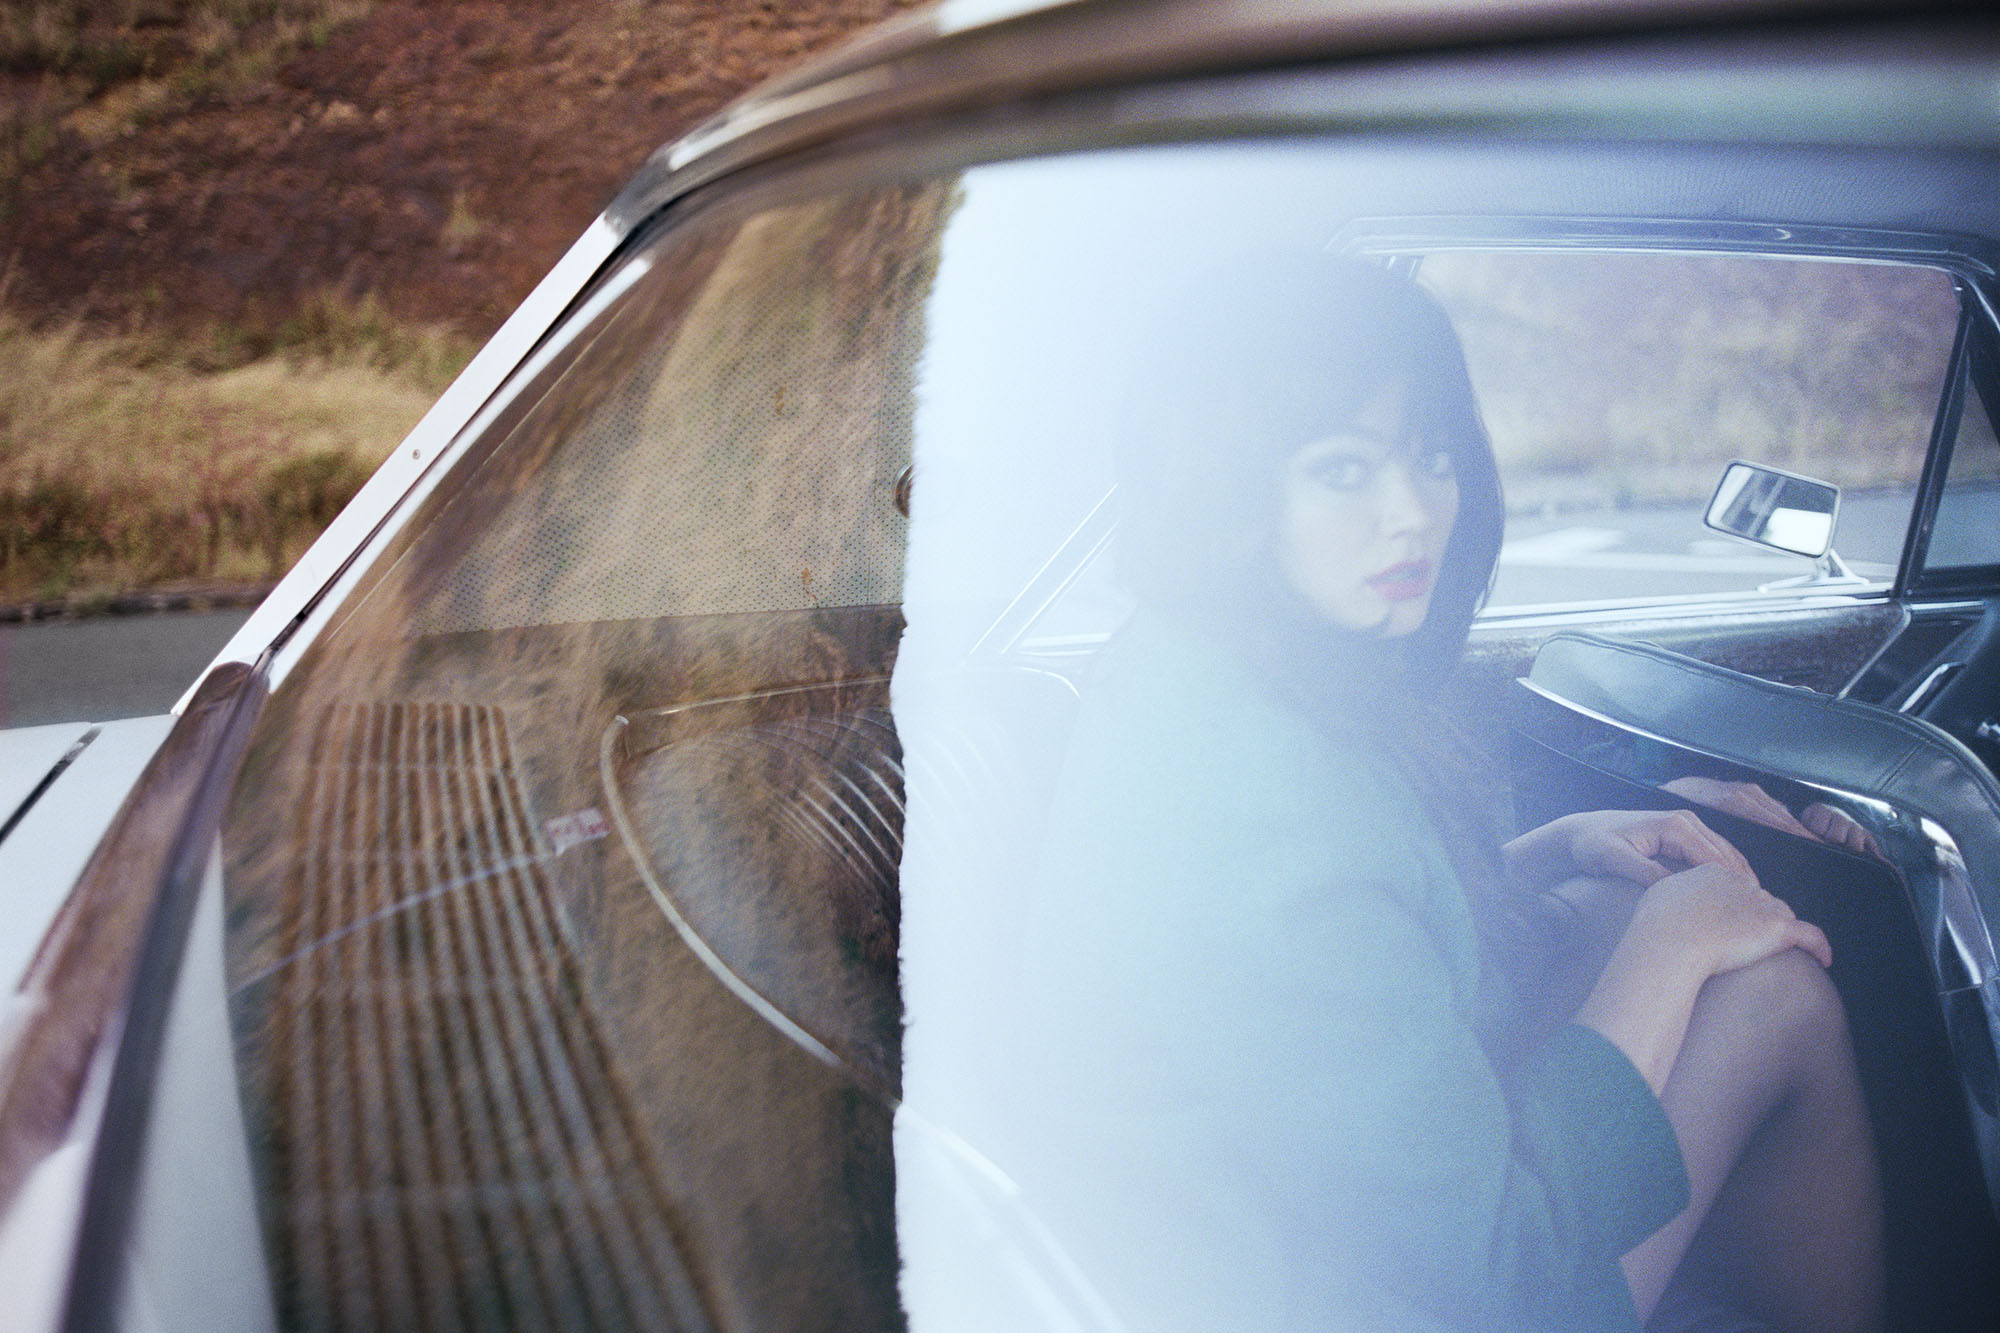 Photograph by Todd Hido